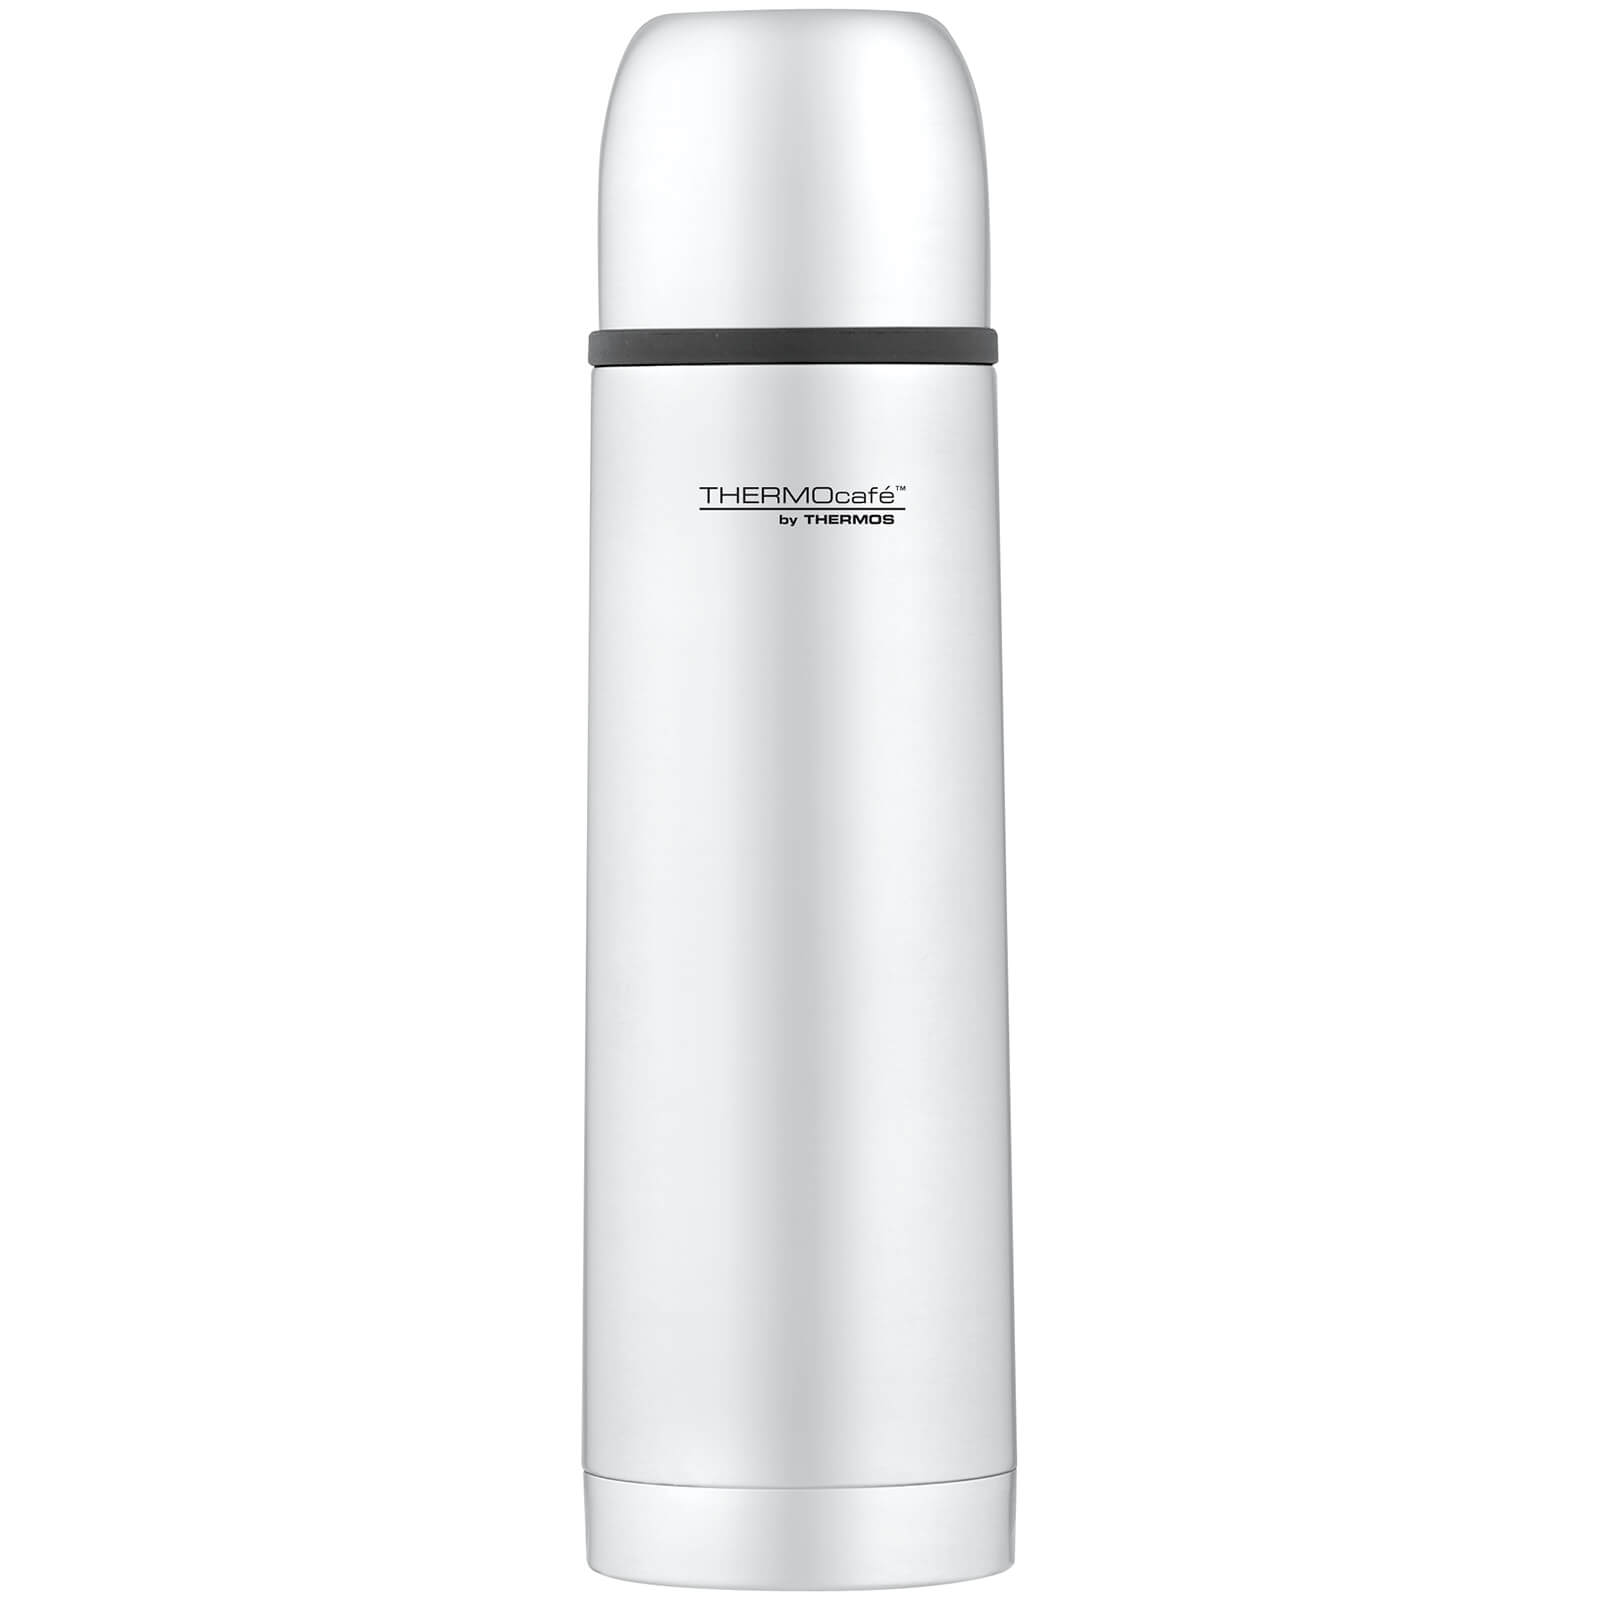 Thermos ThermoCafe Stainless Steel Flask 500ml